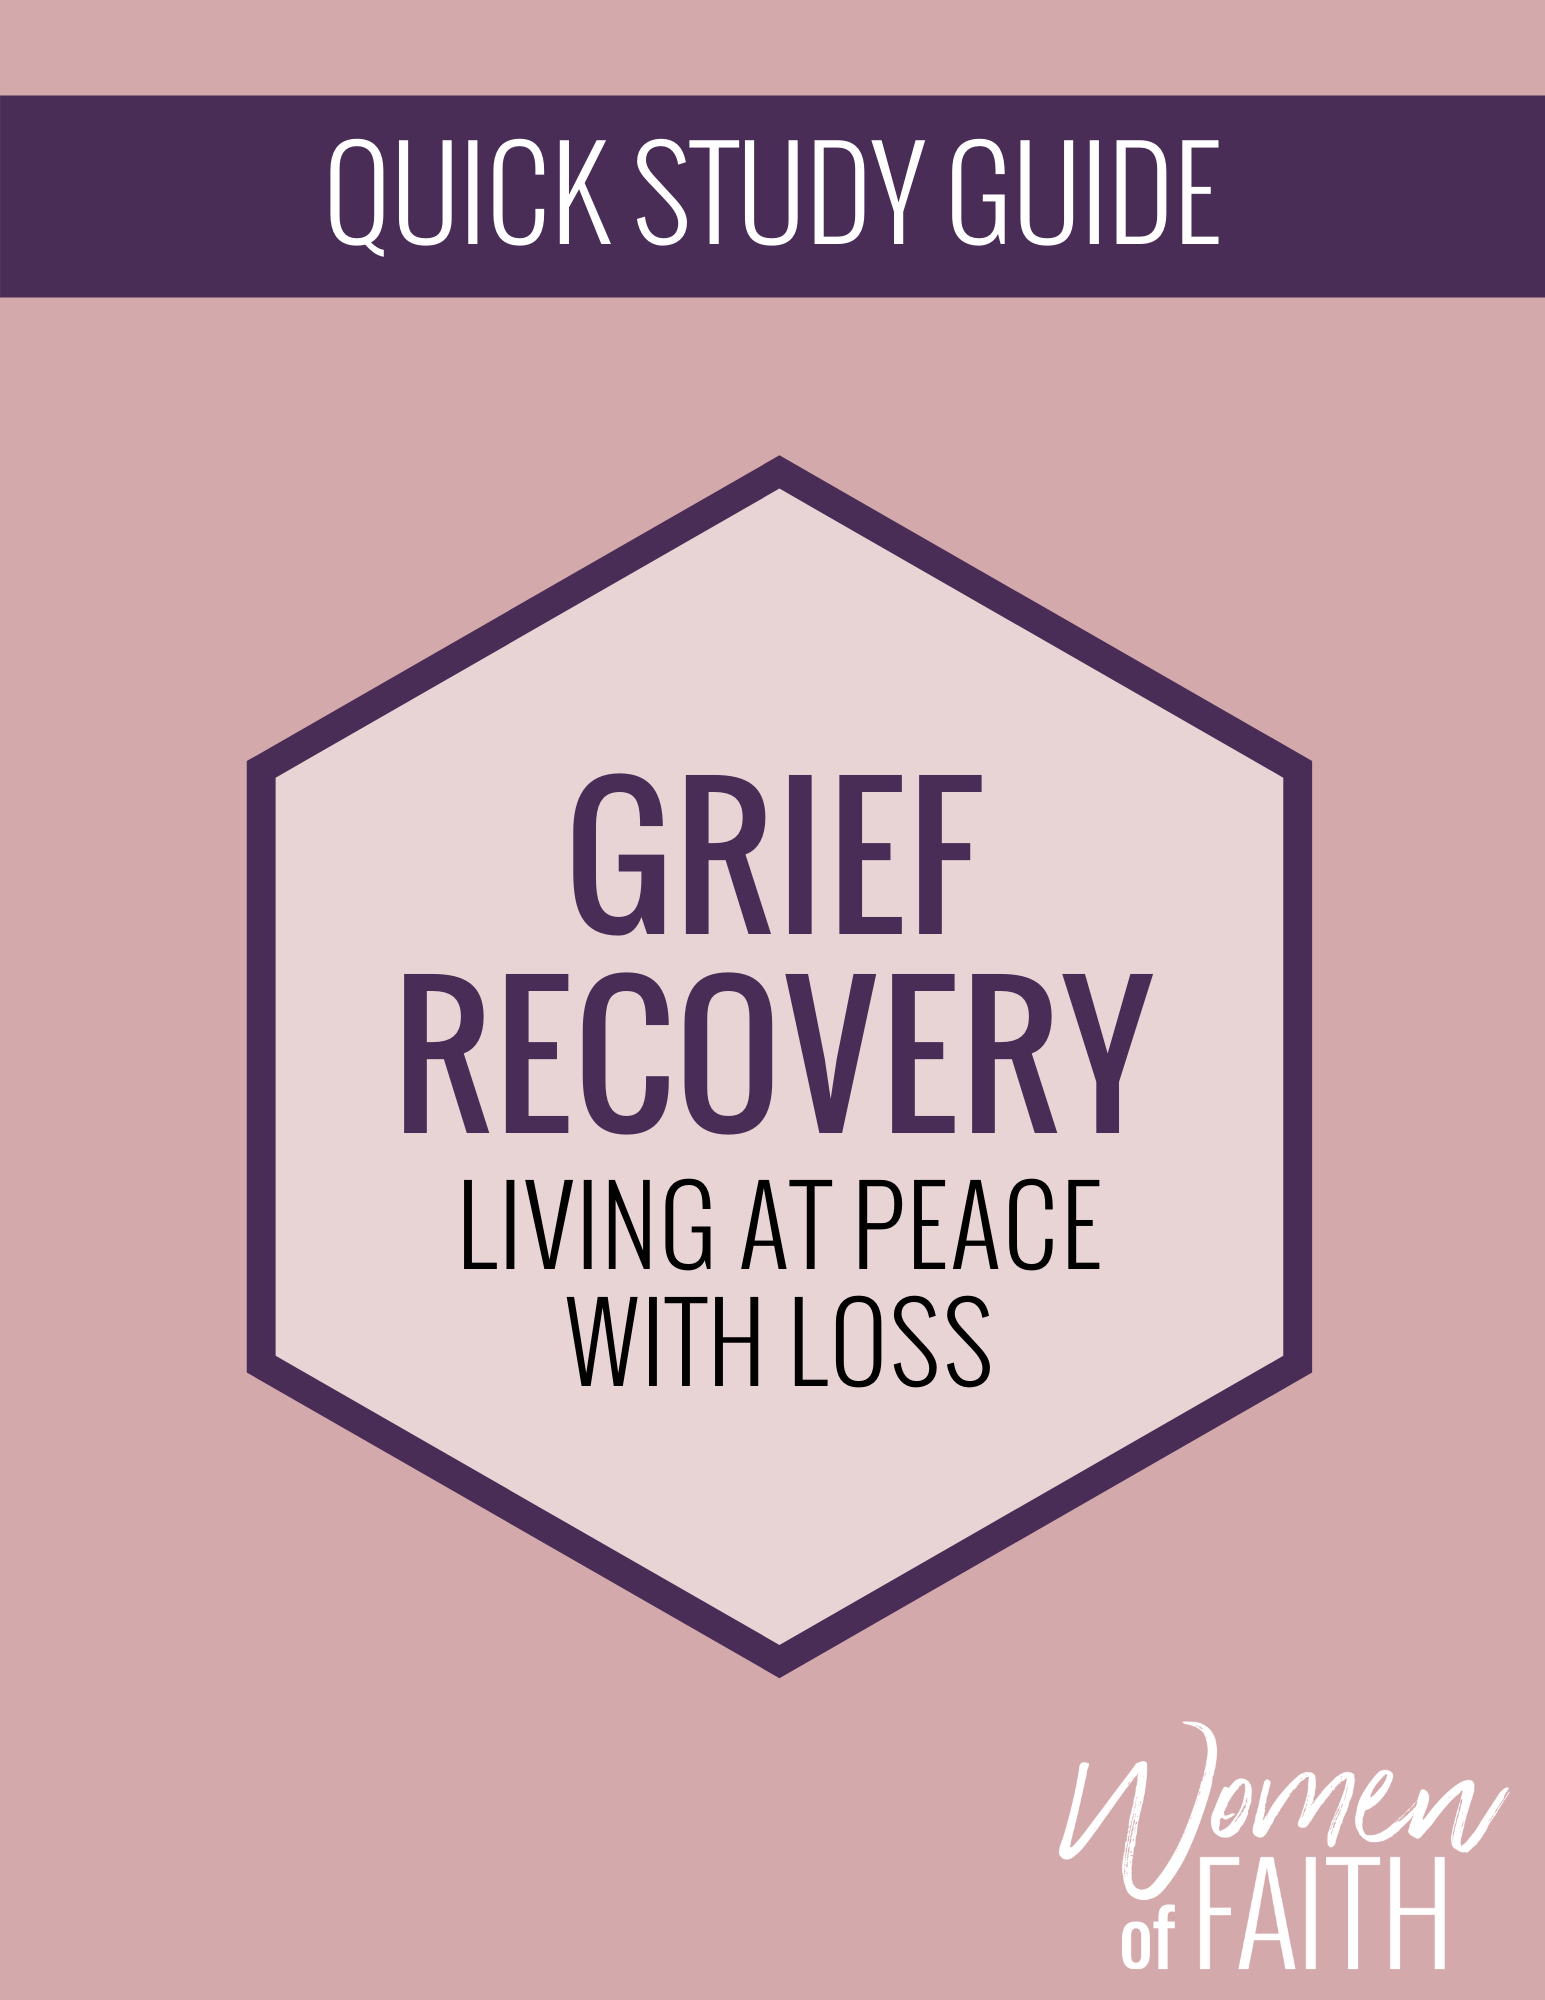 GRIEF RECOVERY Quick Study Guide (E-GUIDE)